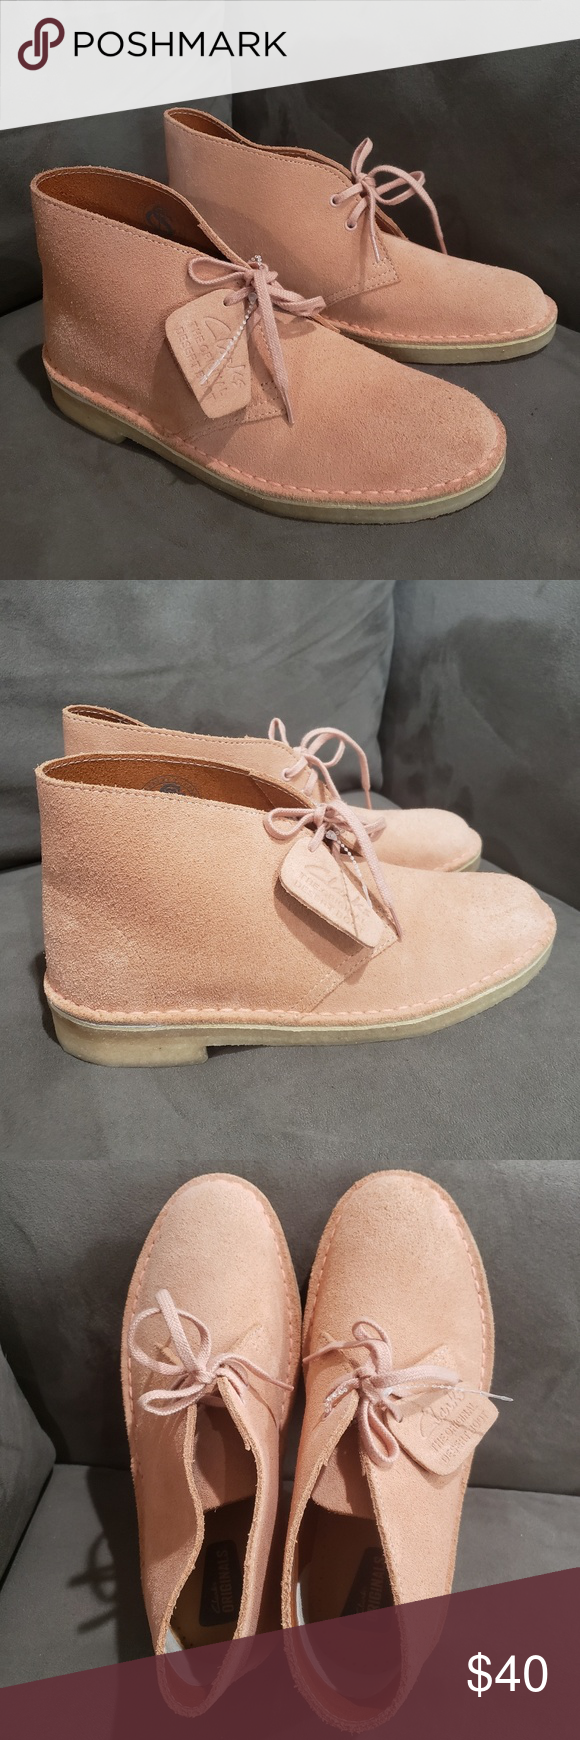 peach ankle boots